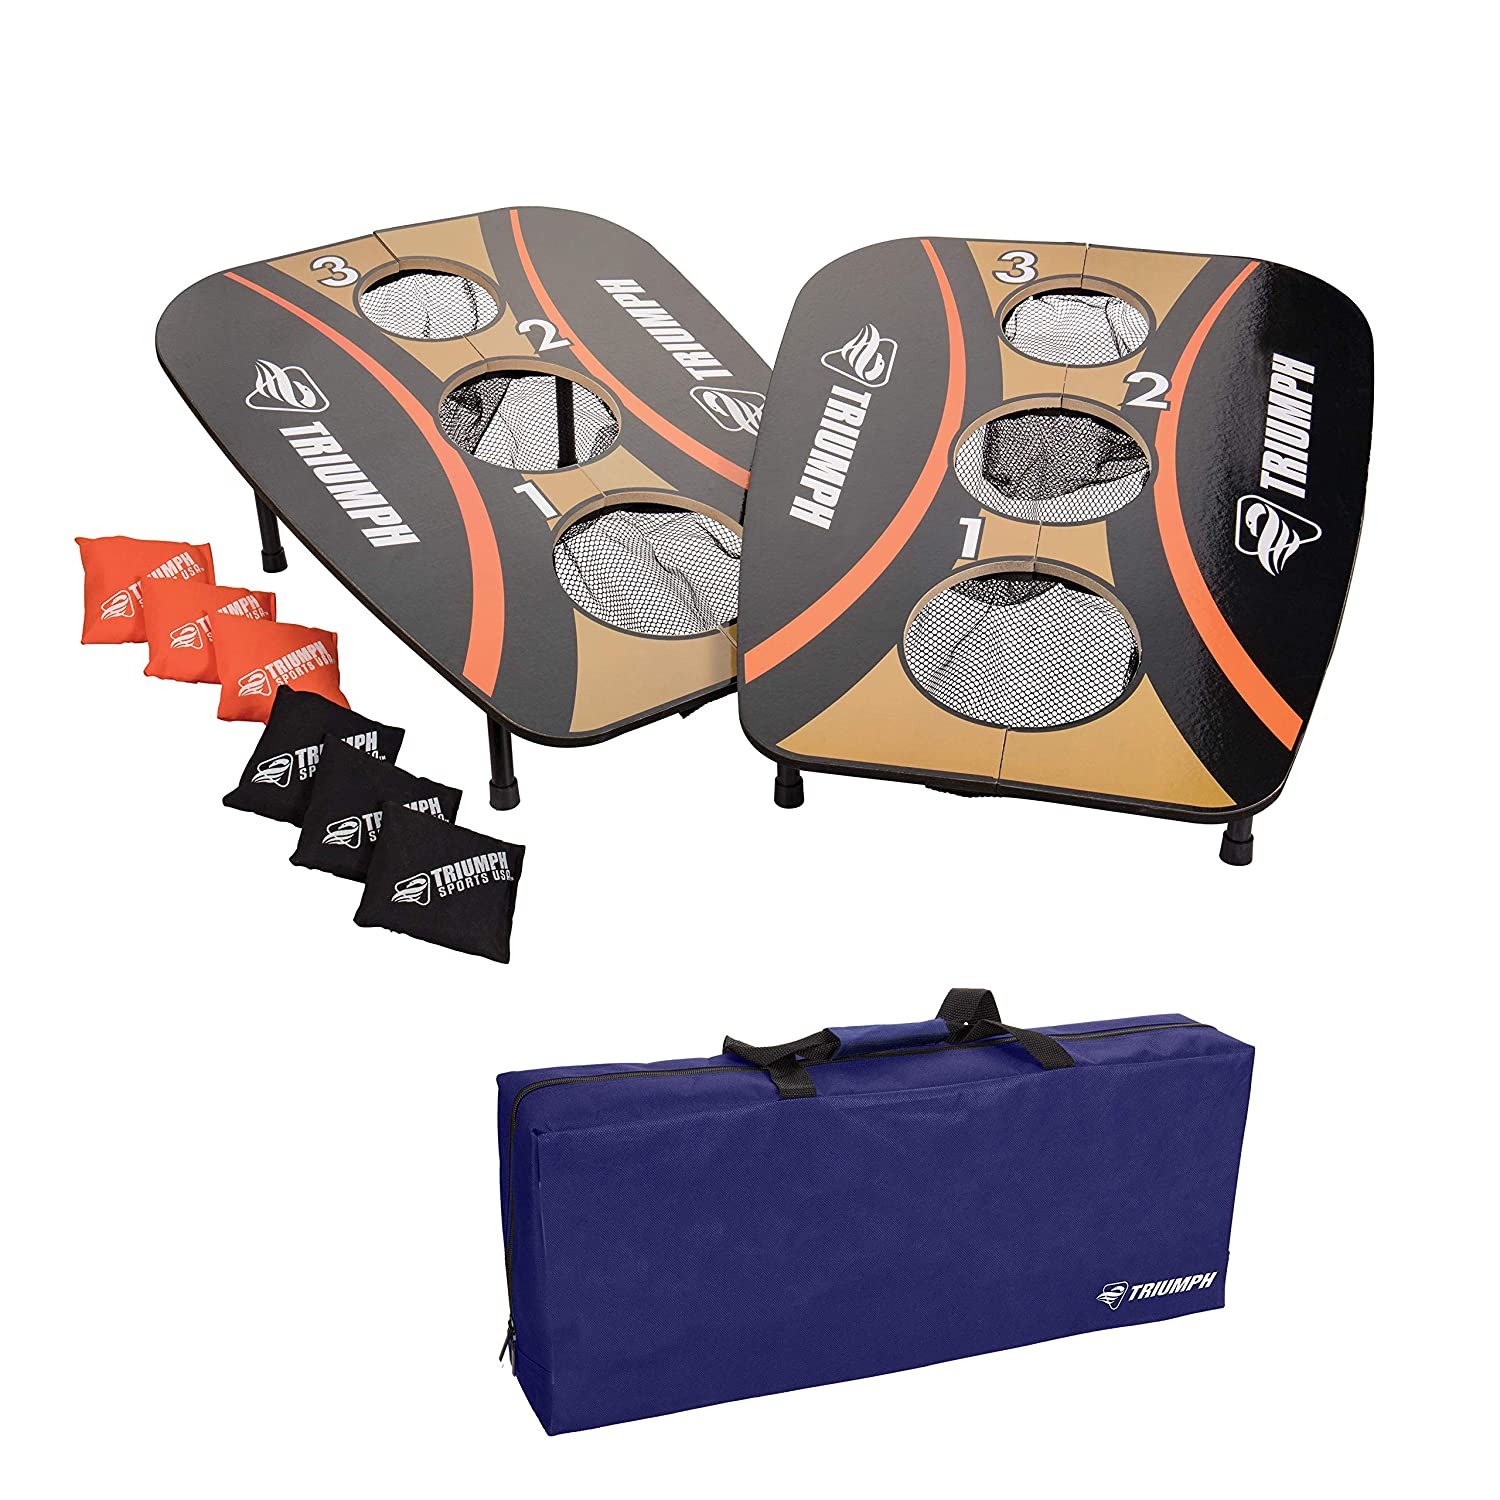 Amazon.com : Triumph 3-Hole Foldable Outdoor Bag Toss Game Includes Six Durable Square Bean Bags : Children S Games : Sports & Outdoors